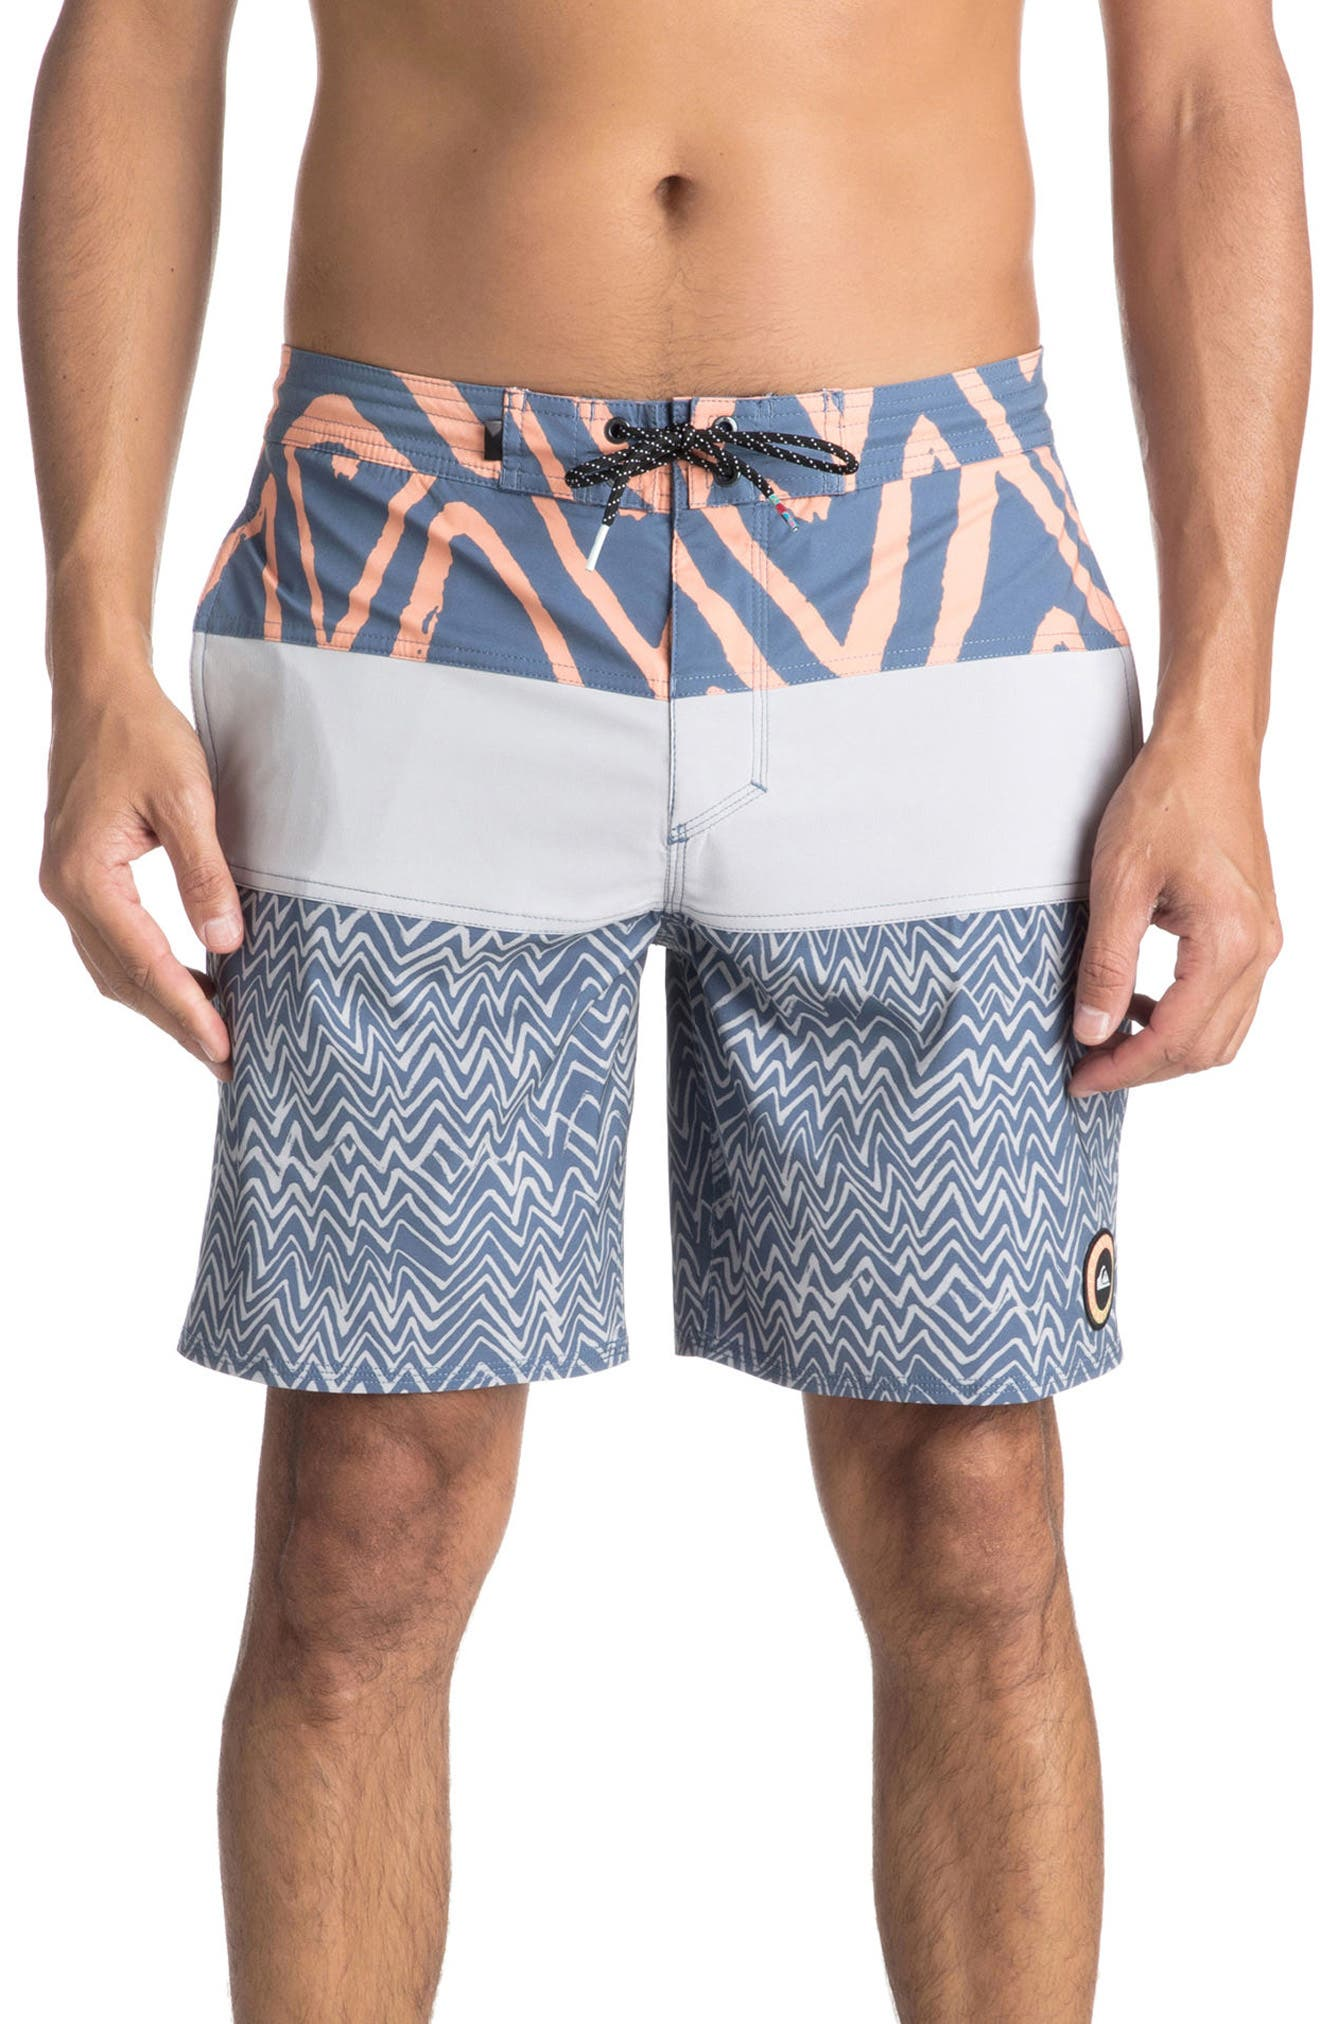 TechTonic Board Shorts,                         Main,                         color, 020